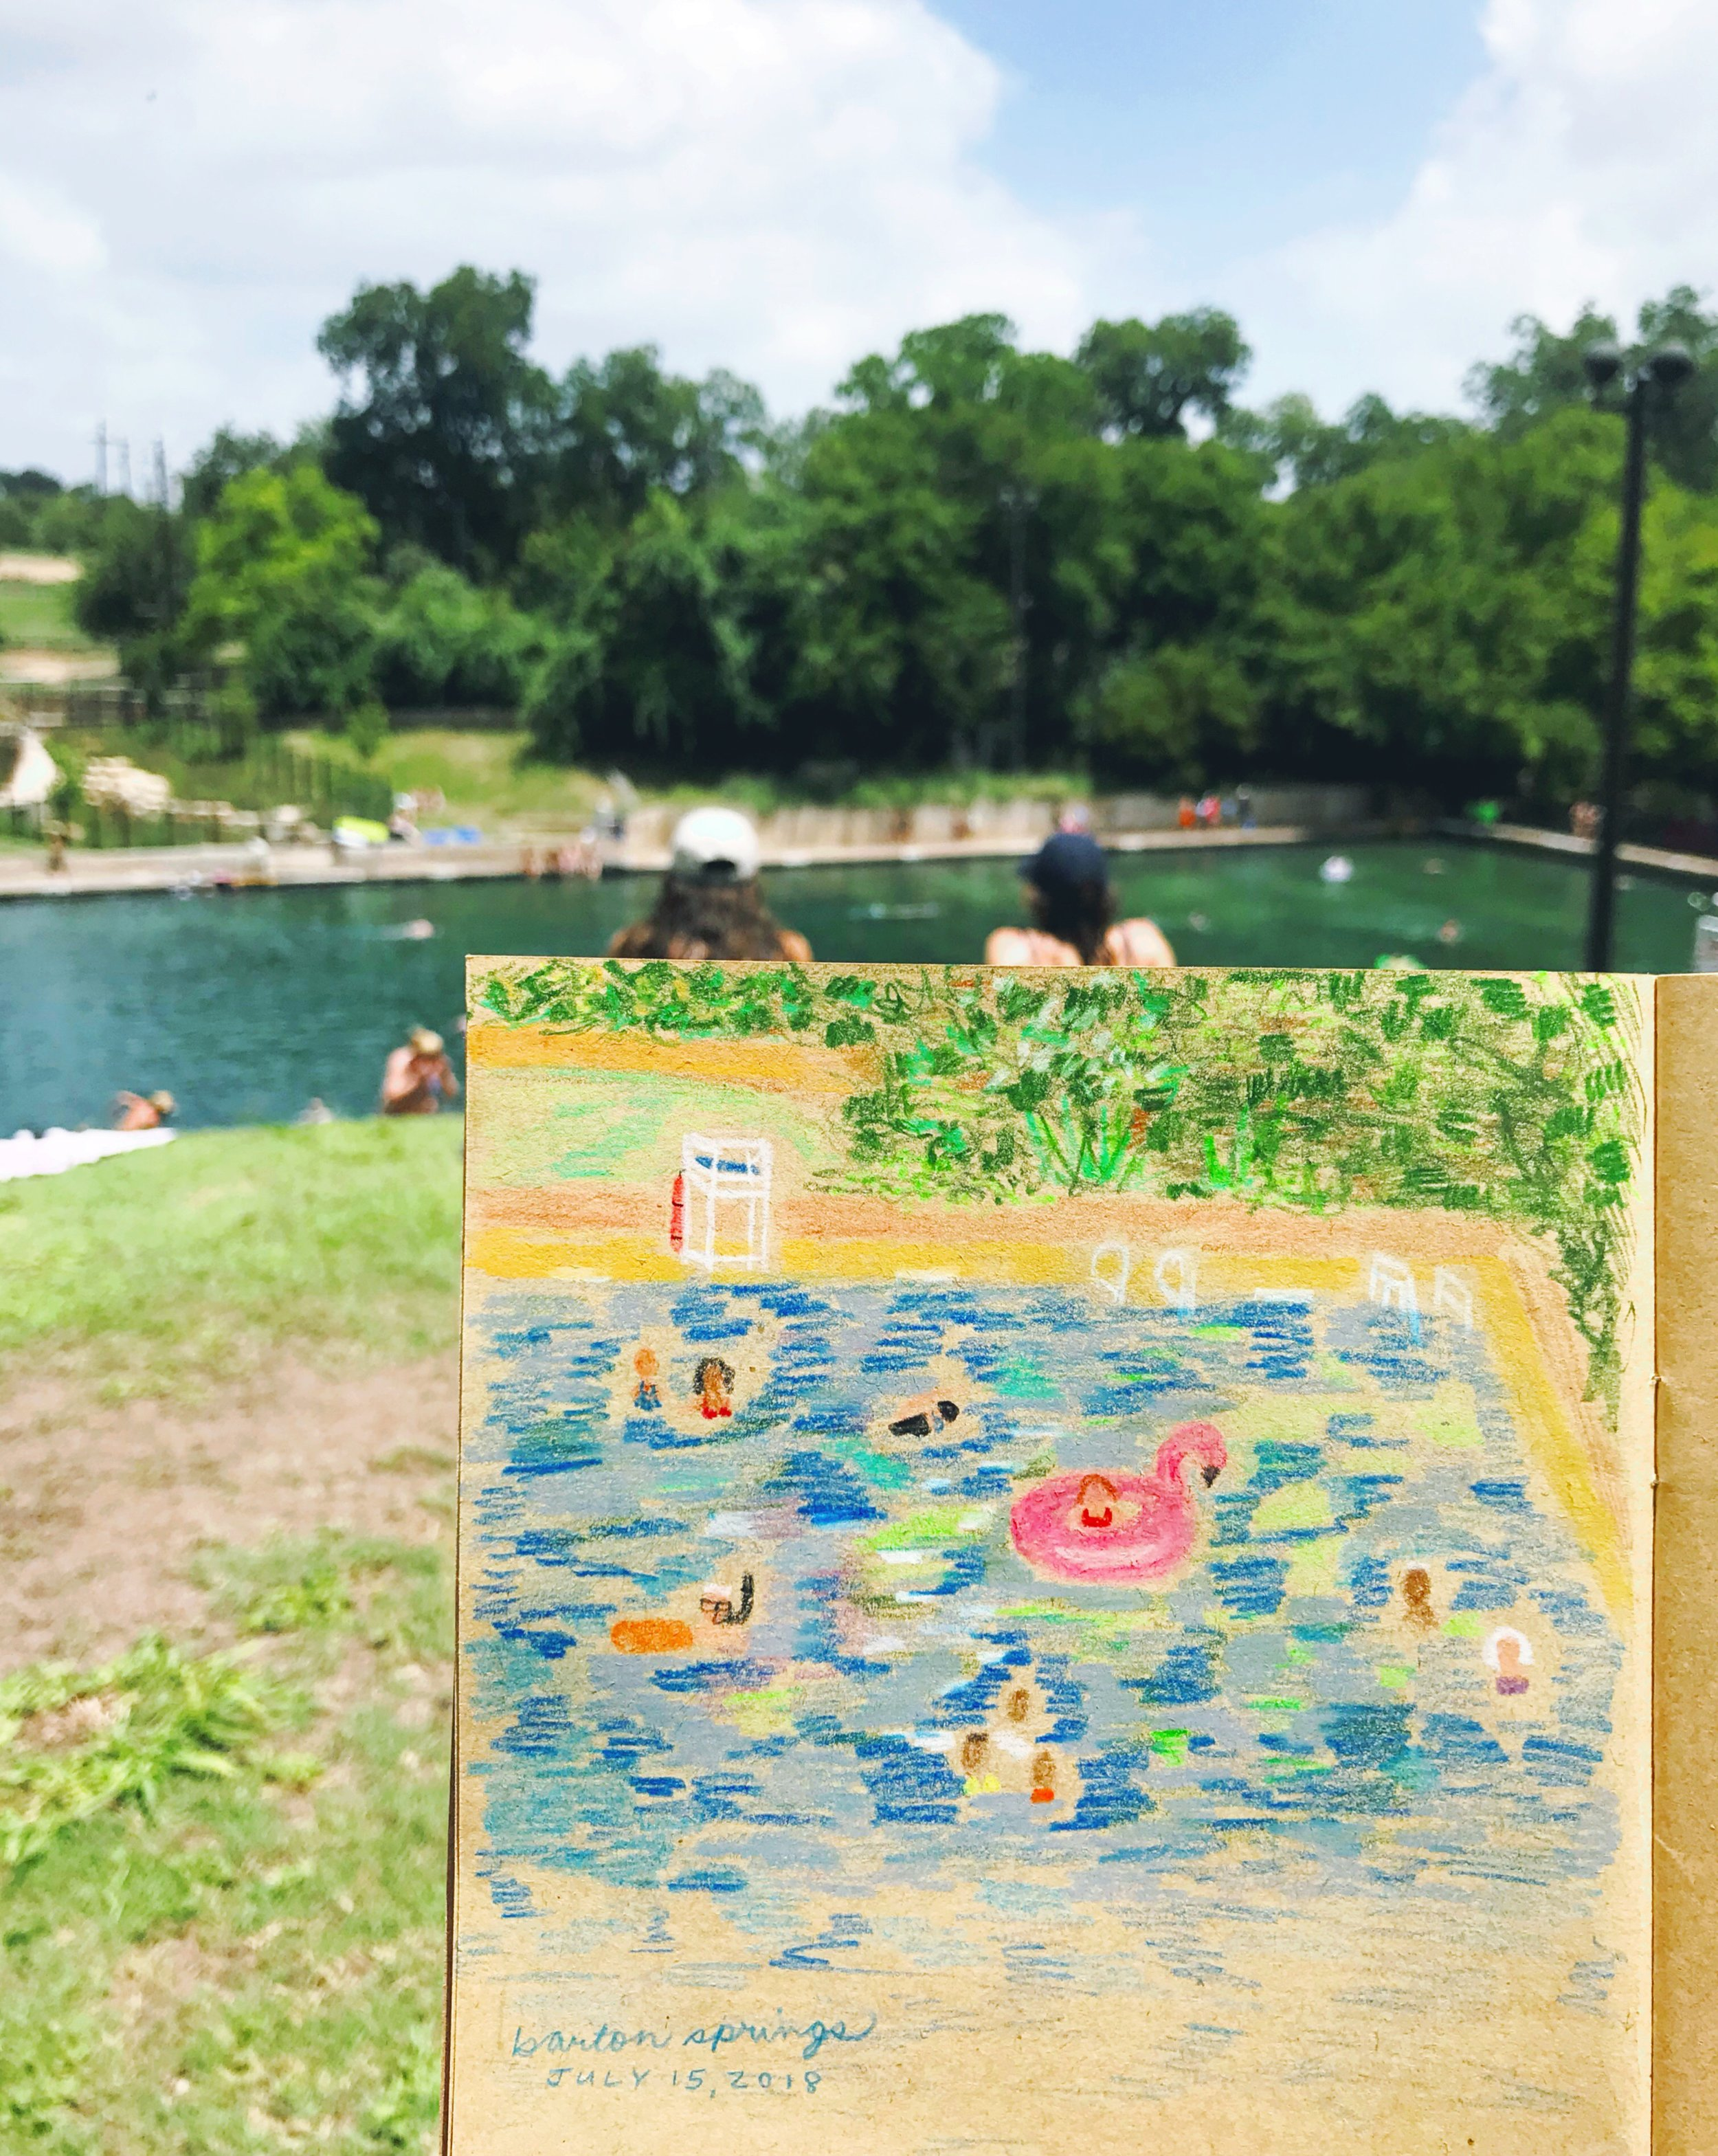 A good day at Barton Springs.